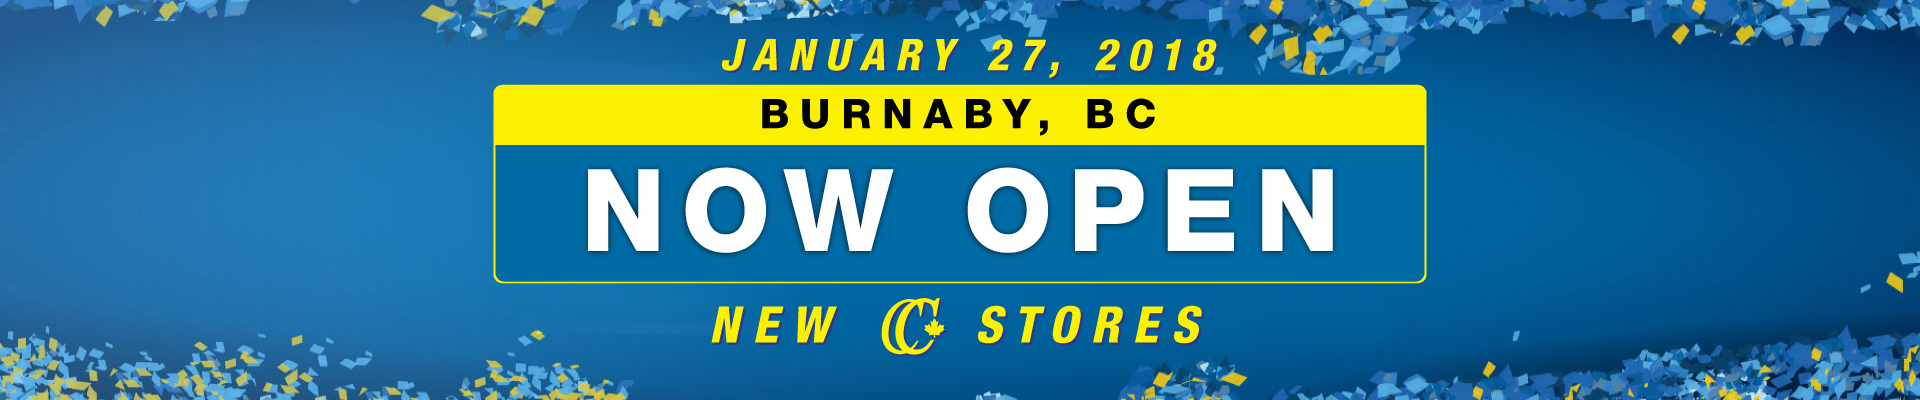 Burnaby Now Open